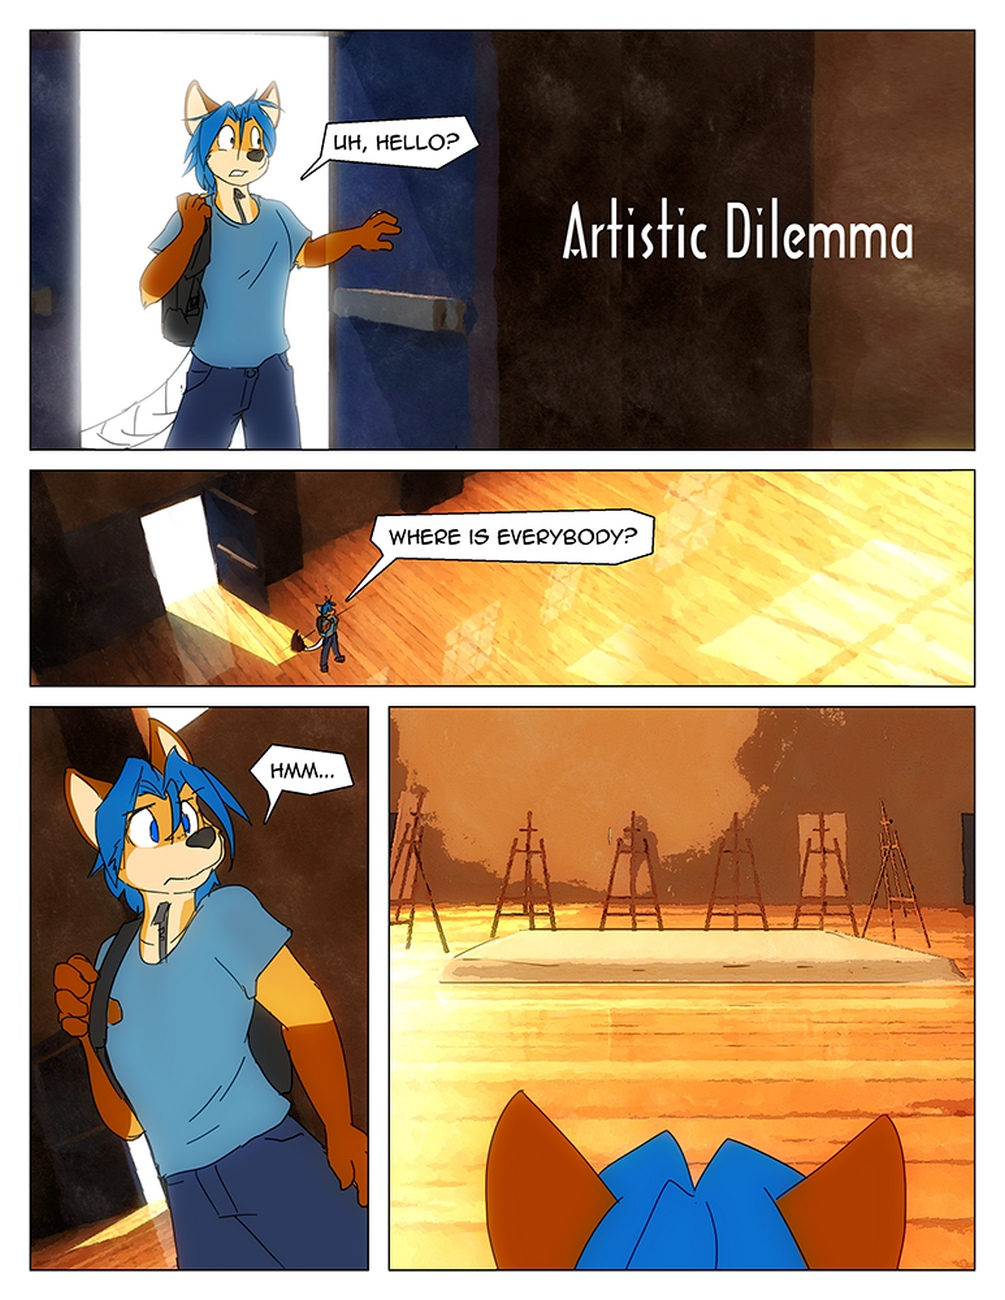 Artistic-Dilemma 2 free sex comic